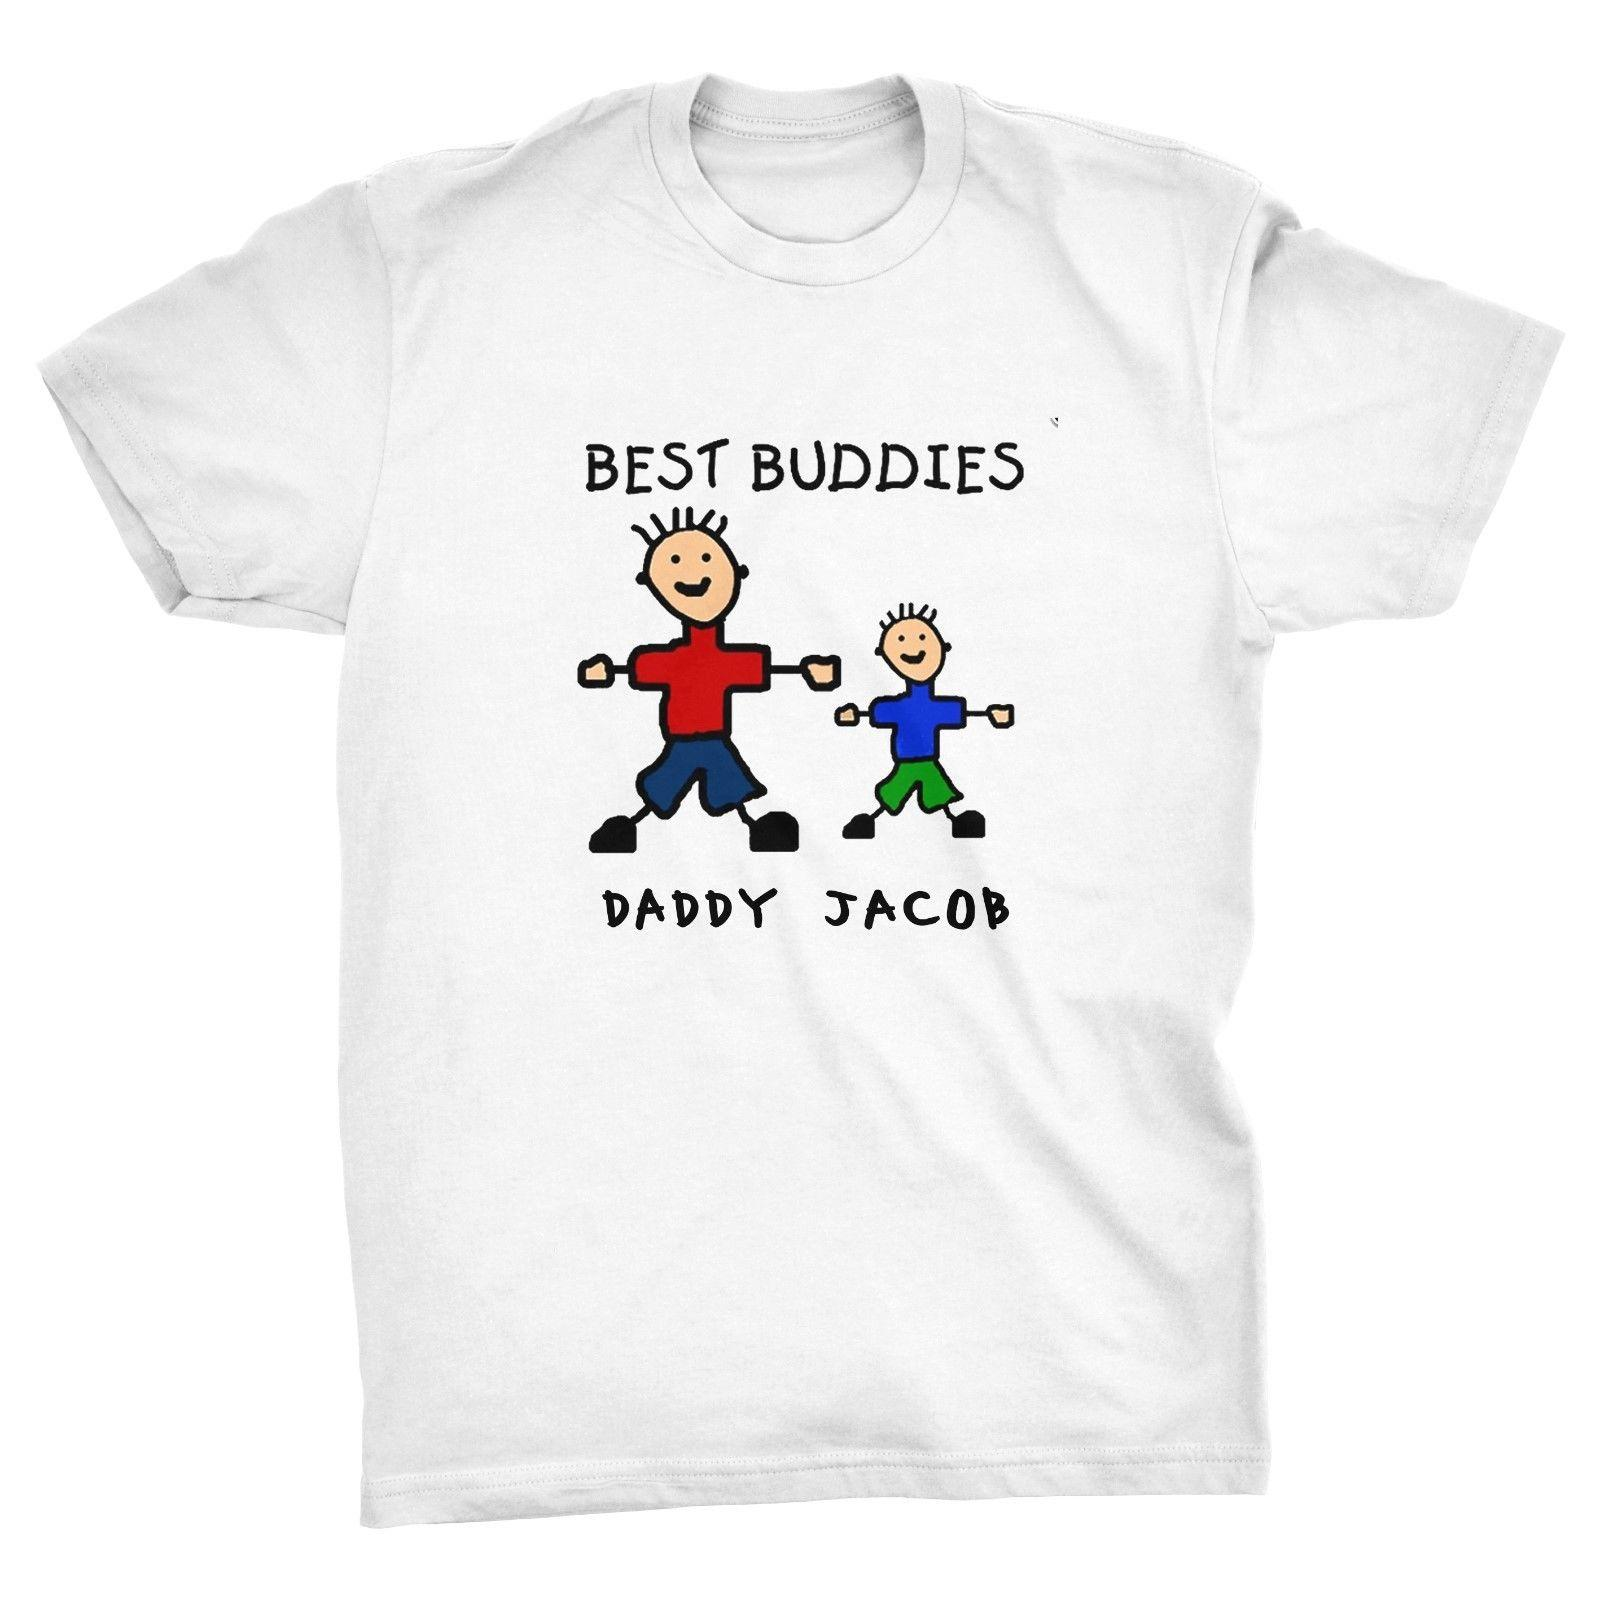 b4500718 Personalised Best Buddies Father's Day T-shirt, dad, daddy, friends, father  son Cartoon t shirt men Unisex New Fashion